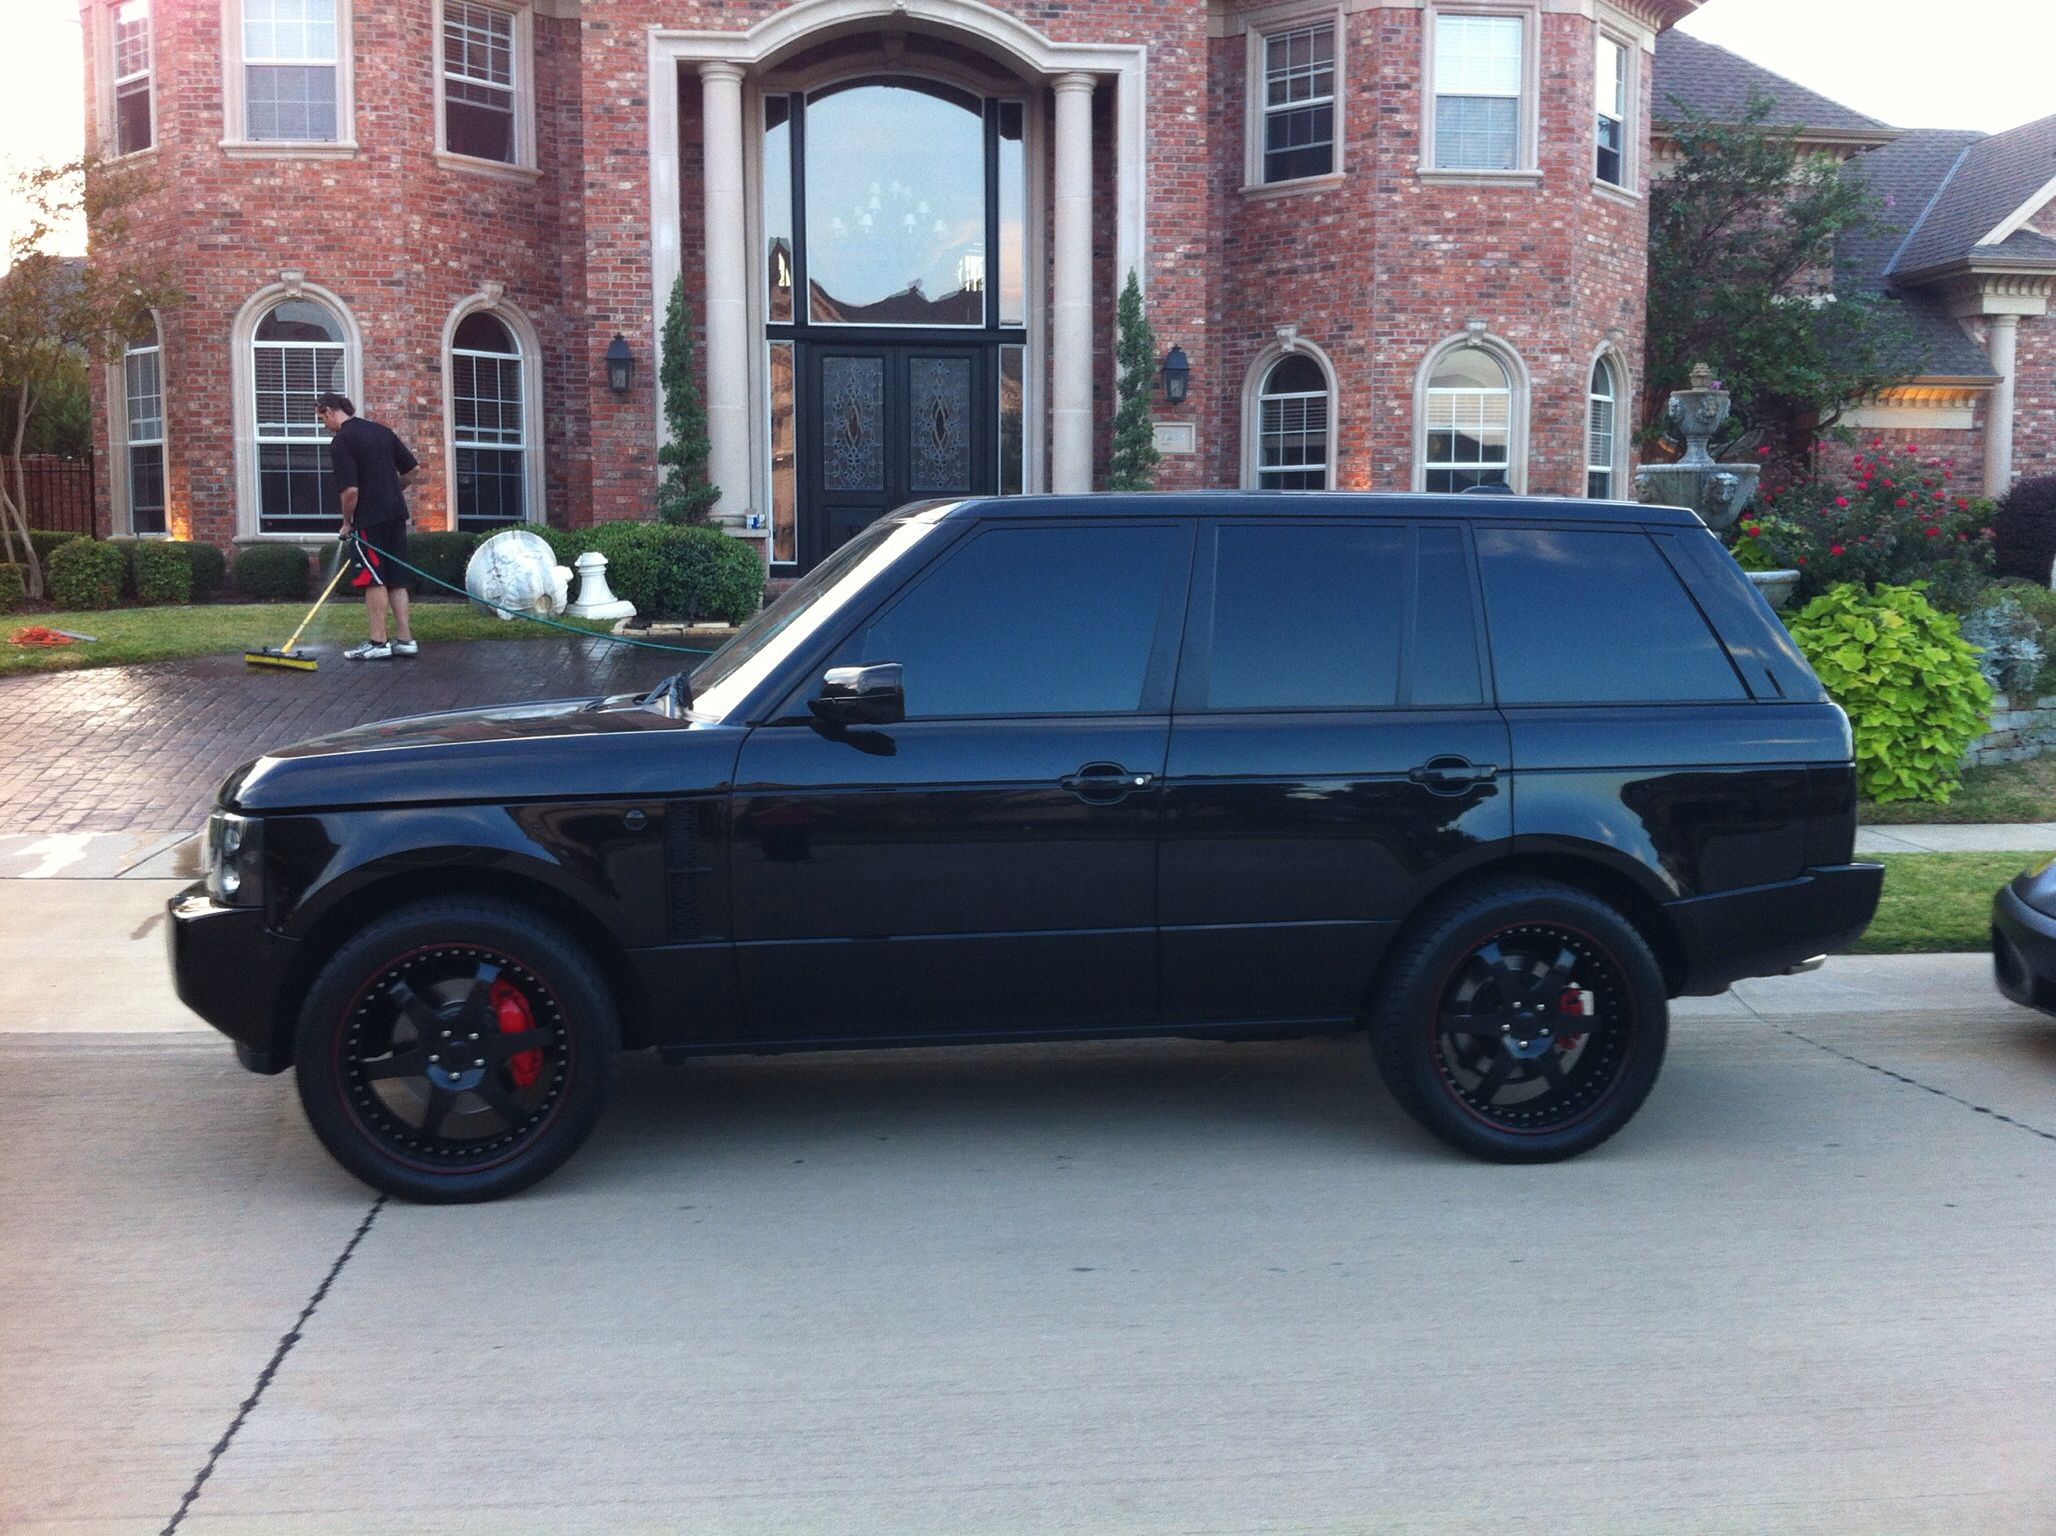 Supercharged Black Range Rover HSE The Cars Pinterest